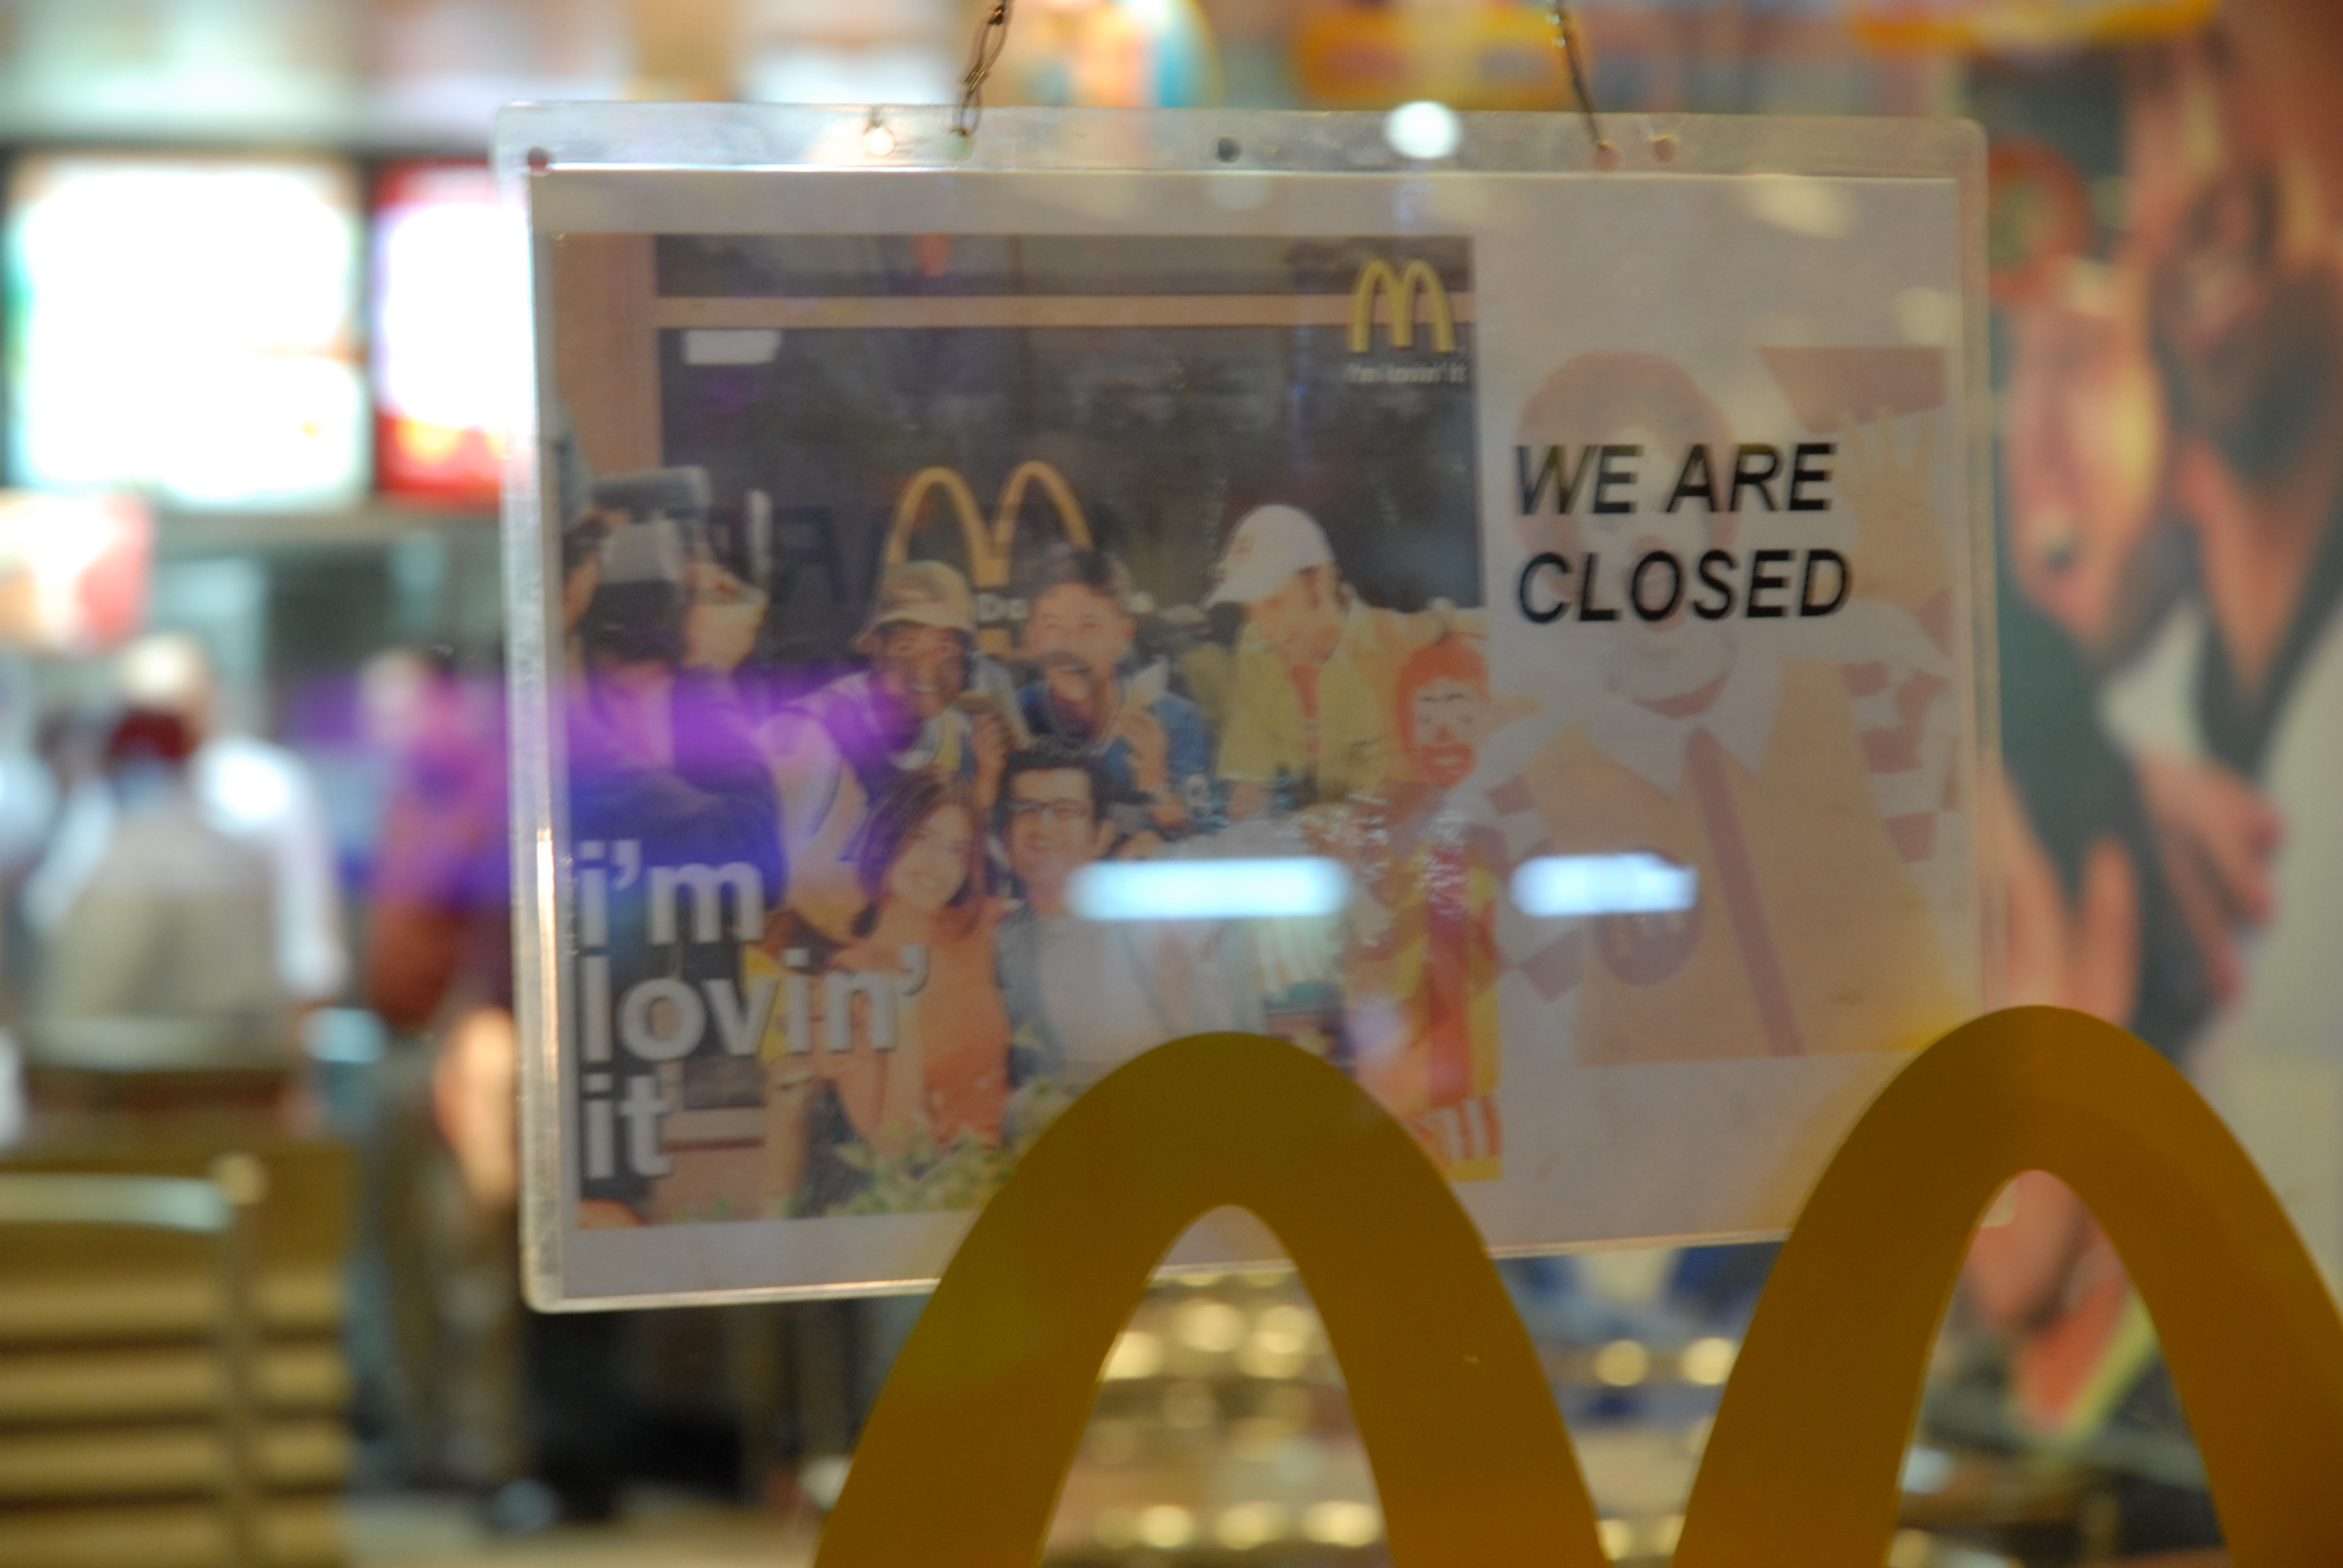 43/55 McD Outlets in Delhi To Shut Shop. Thoughts?